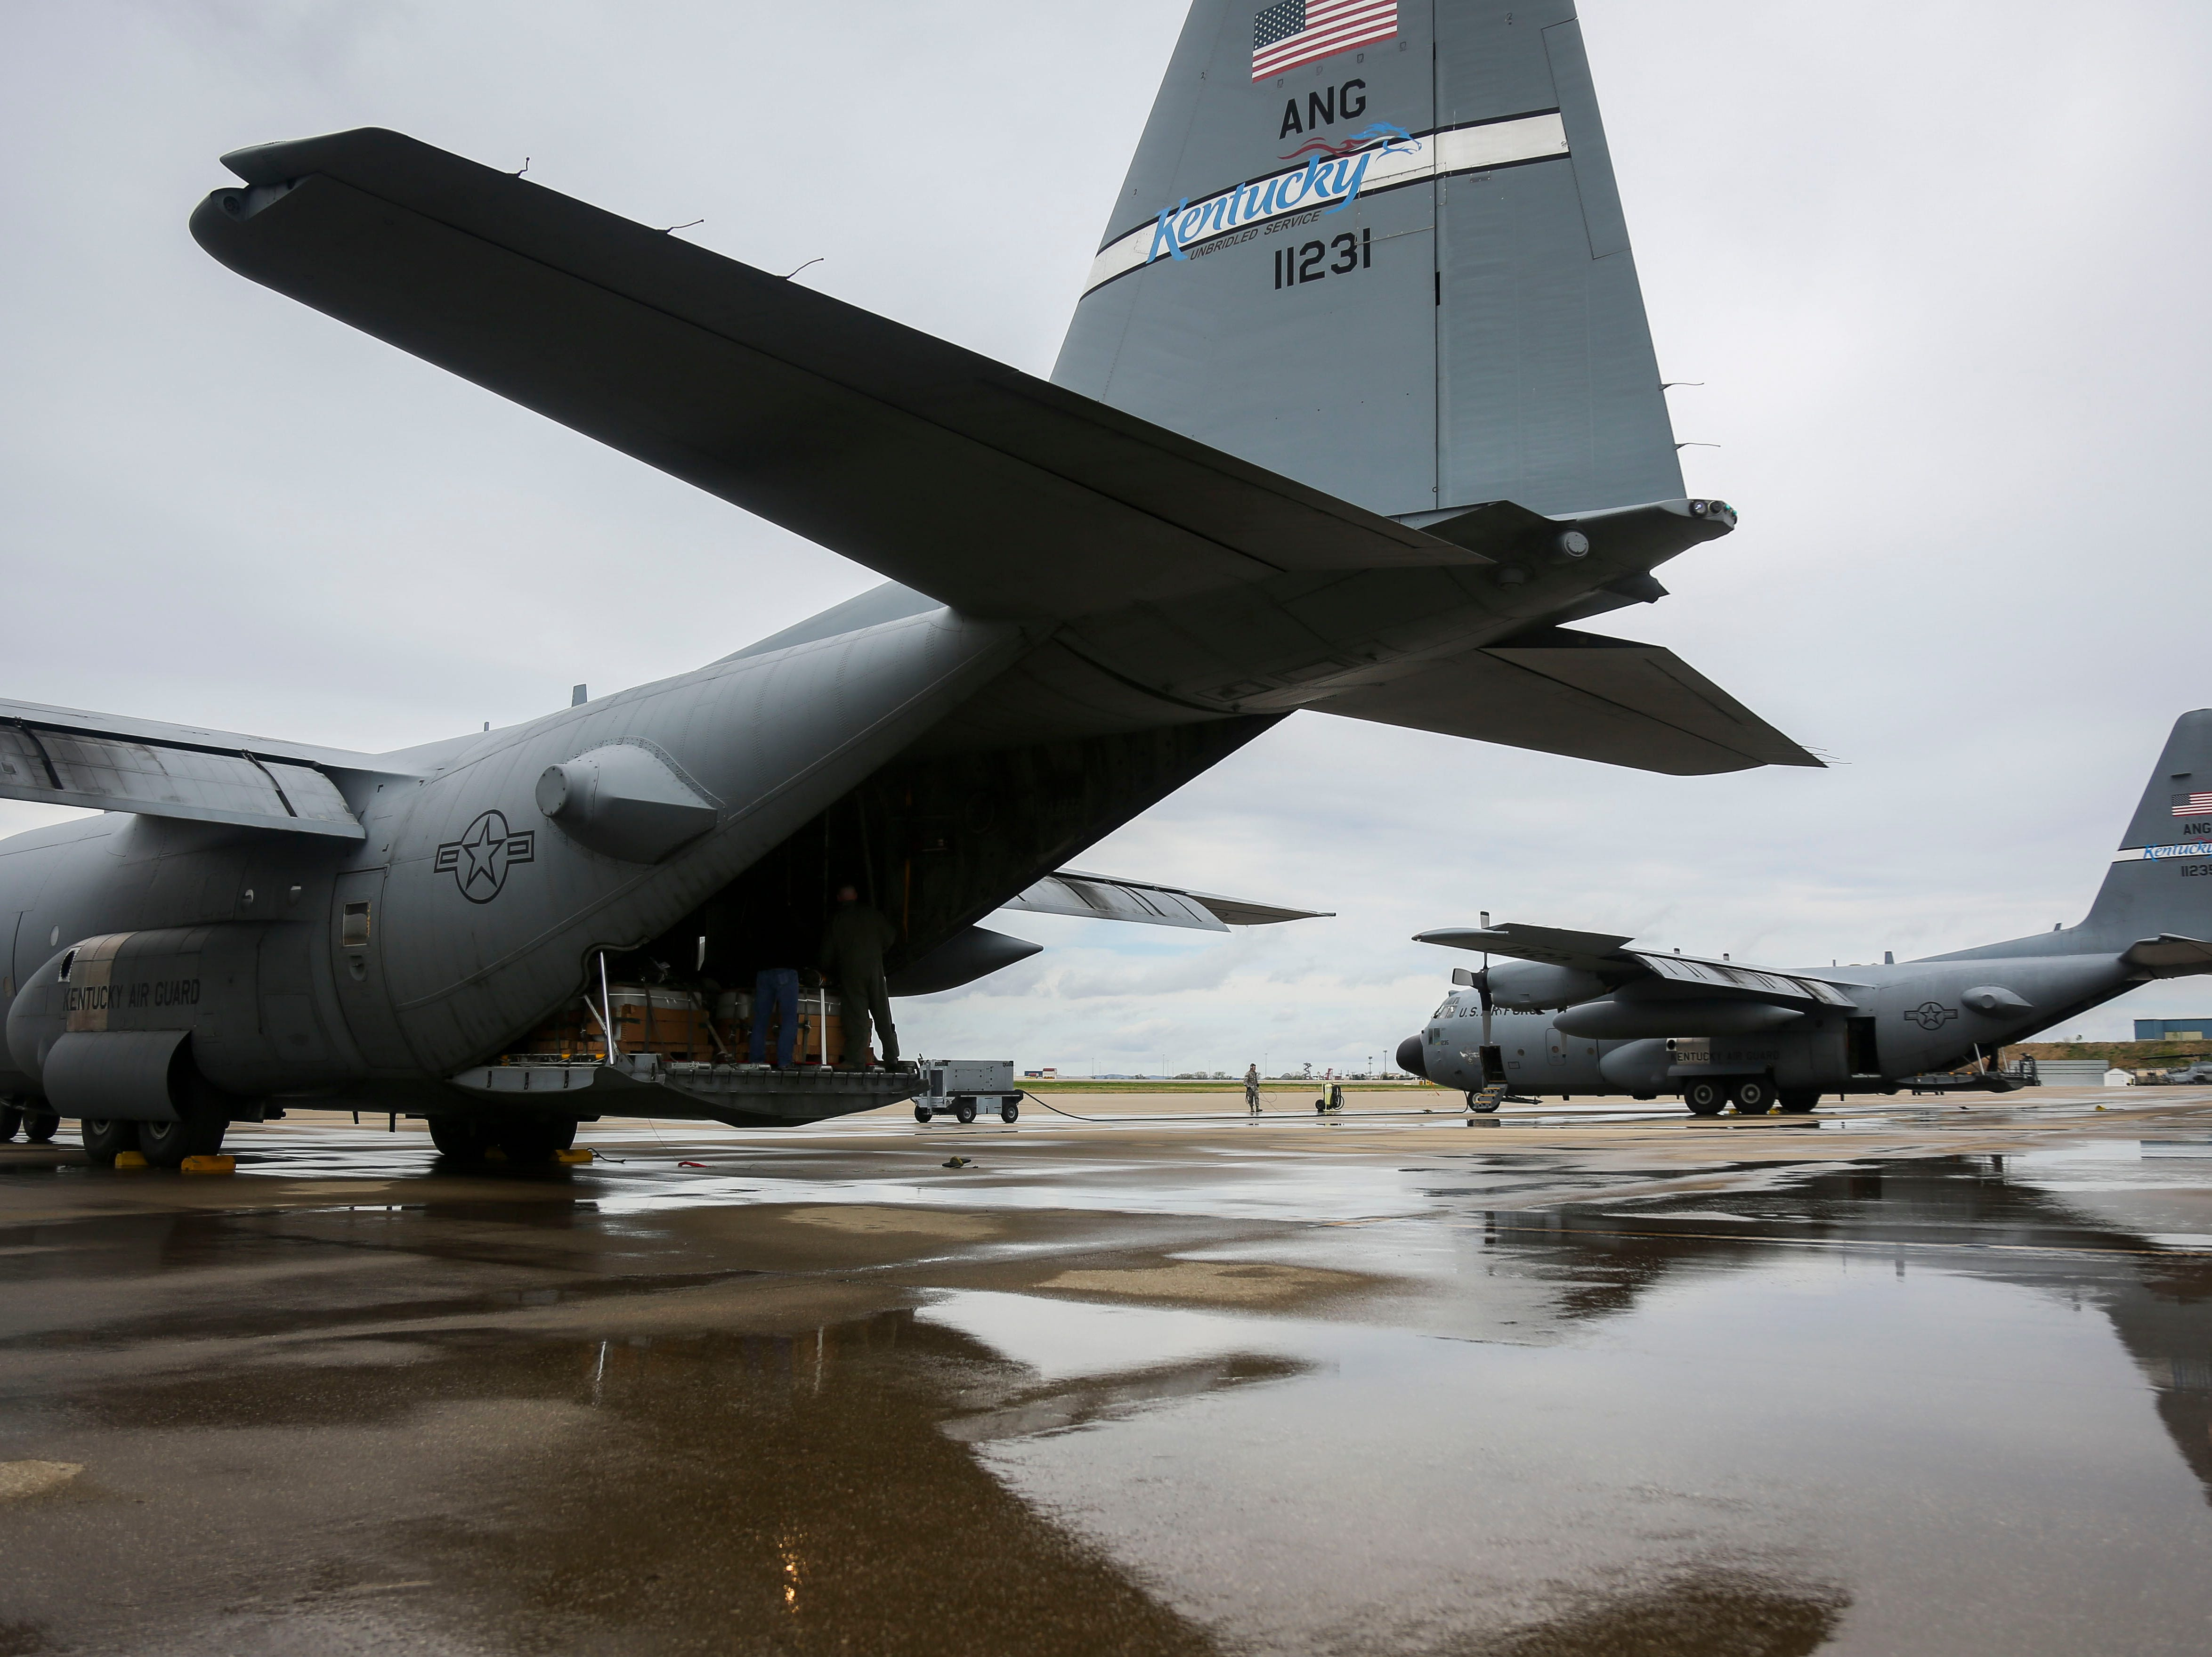 A C-130 Hercules, a four-engine, turboprop military transport aircraft, is prepared for a cargo drop on the runway of the Kentucky Air National Guard ahead of practice for Thunder Over Louisville in Louisville, Ky. on Friday, April 12, 2019.